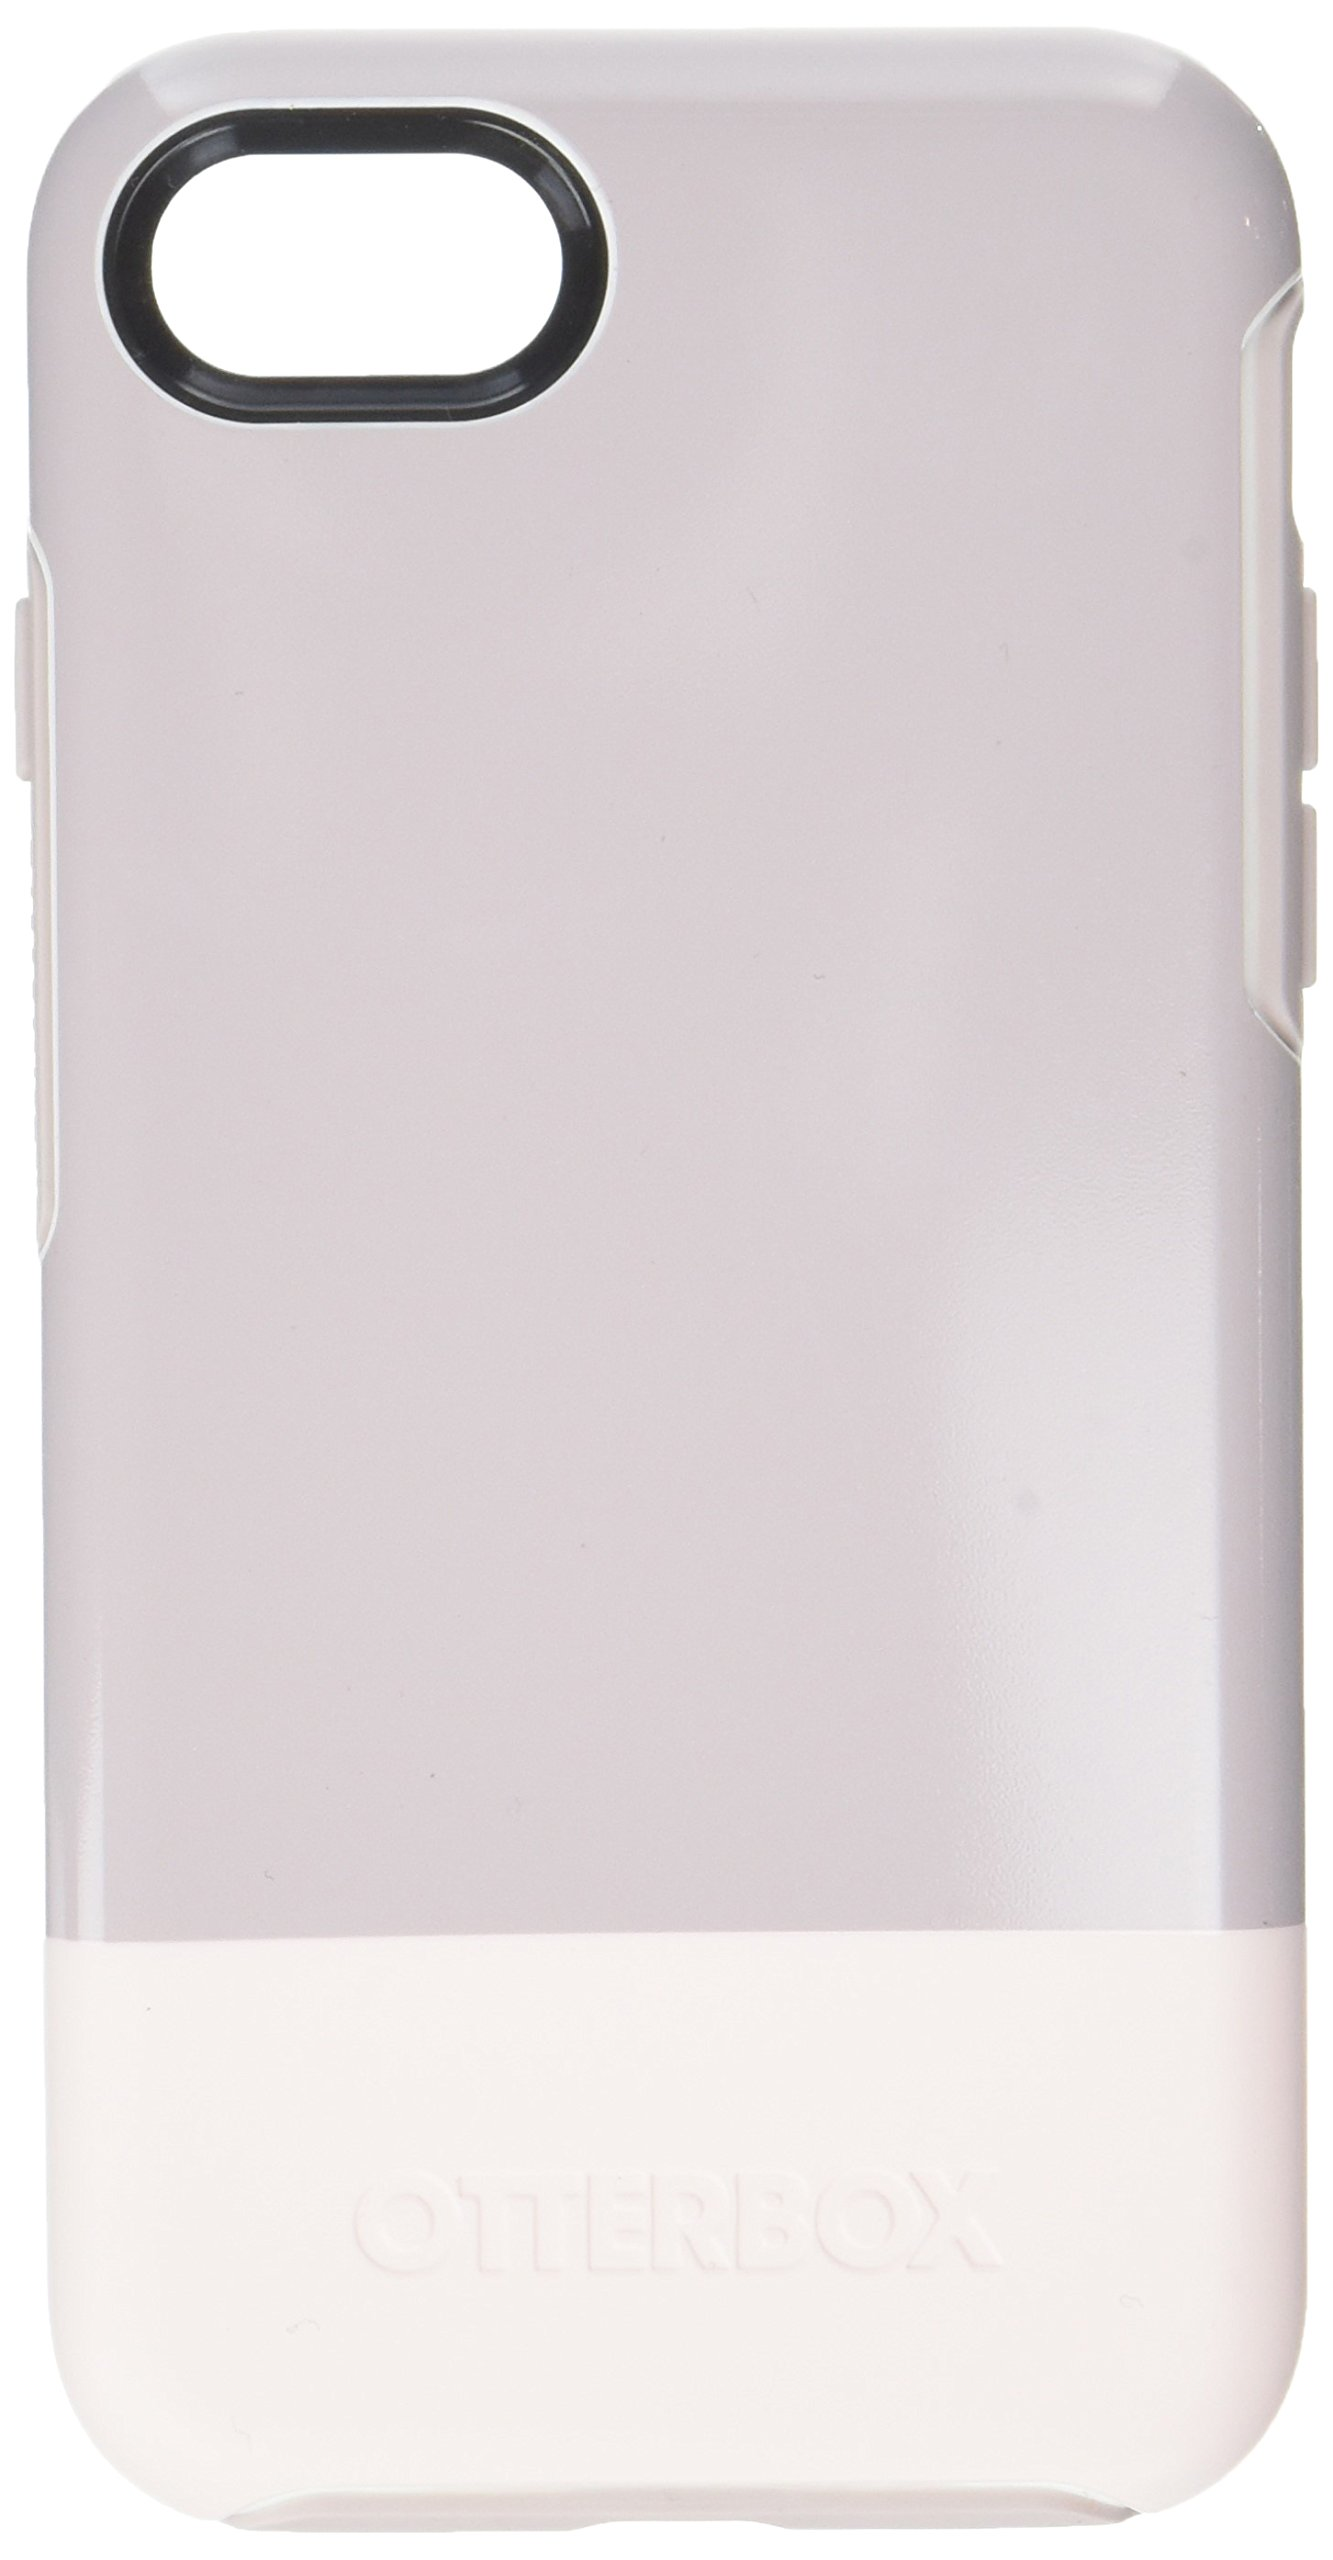 OtterBox SYMMETRY SERIES Case for iPhone SE (2nd gen - 2020) and iPhone 8/7 (NOT PLUS) - Retail Packaging - SKINNY DIP (WHTE/PALE MAUVE/SKINNY DIP)